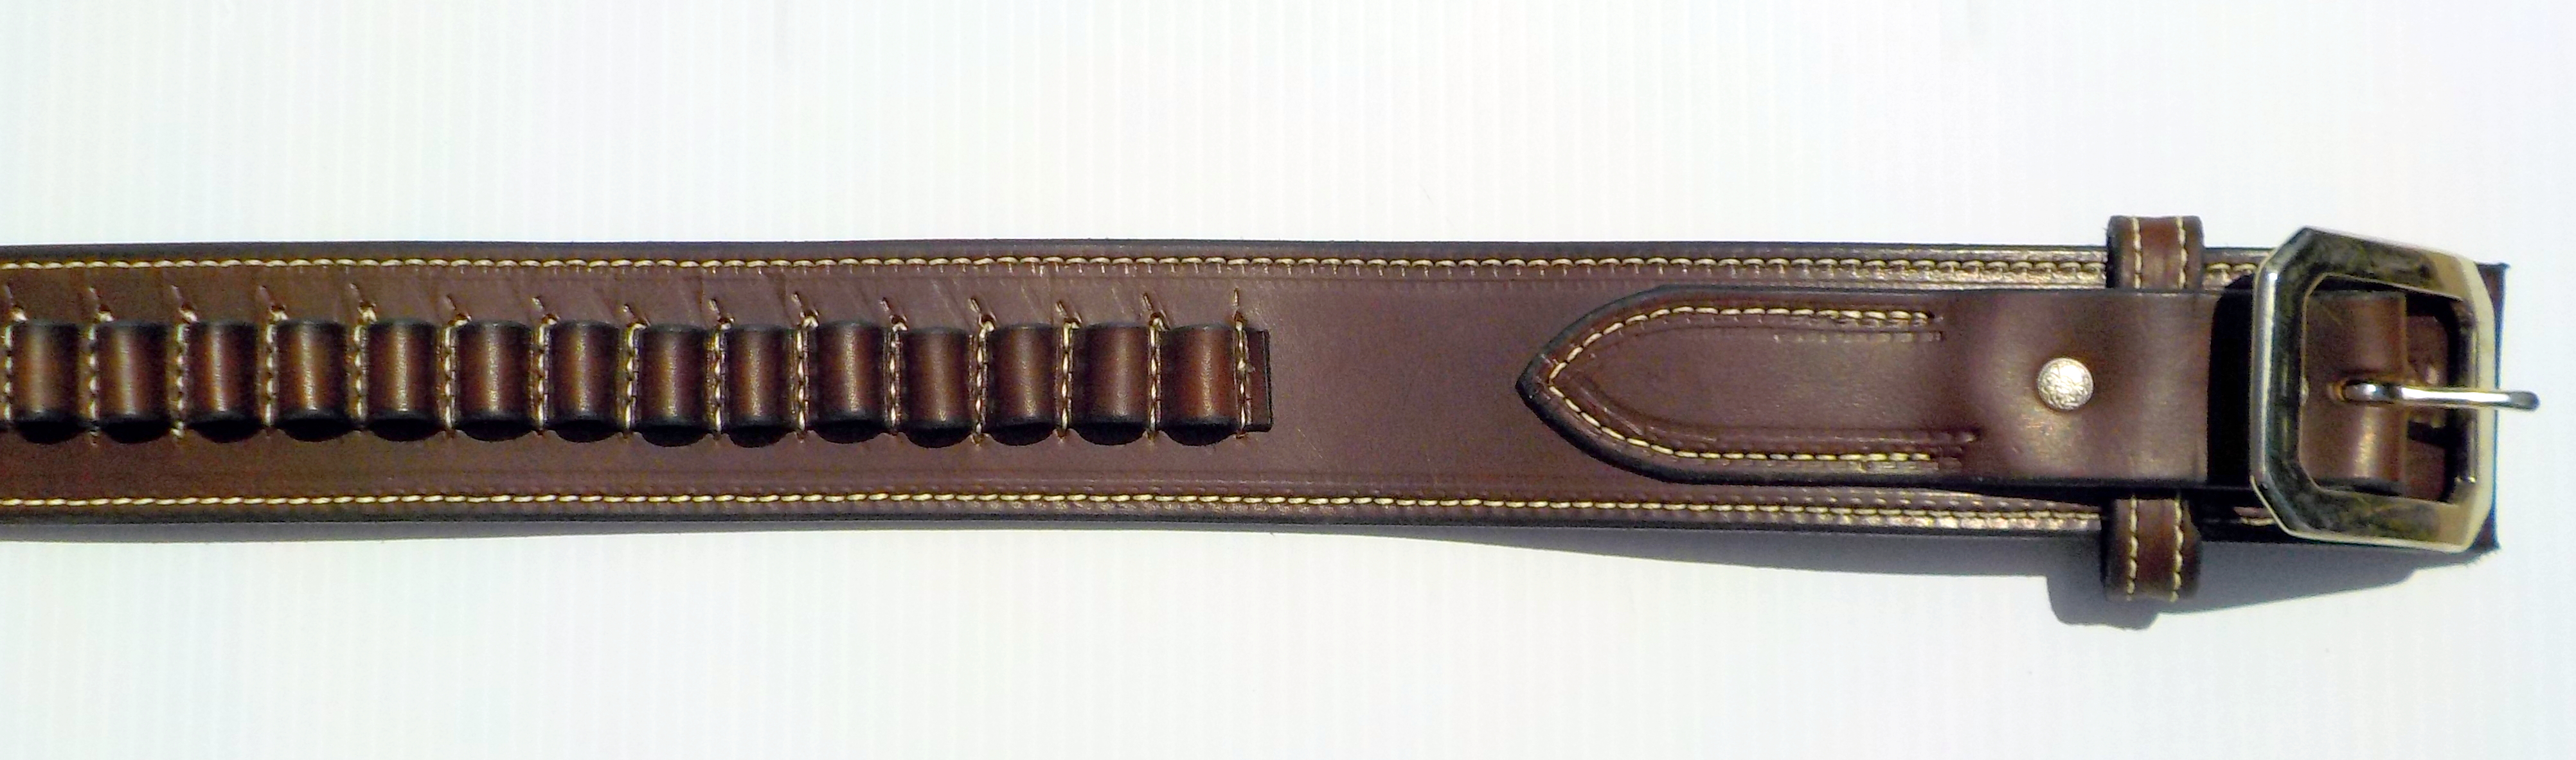 The Ultimate Western Premium Full Grain Leather Belt With